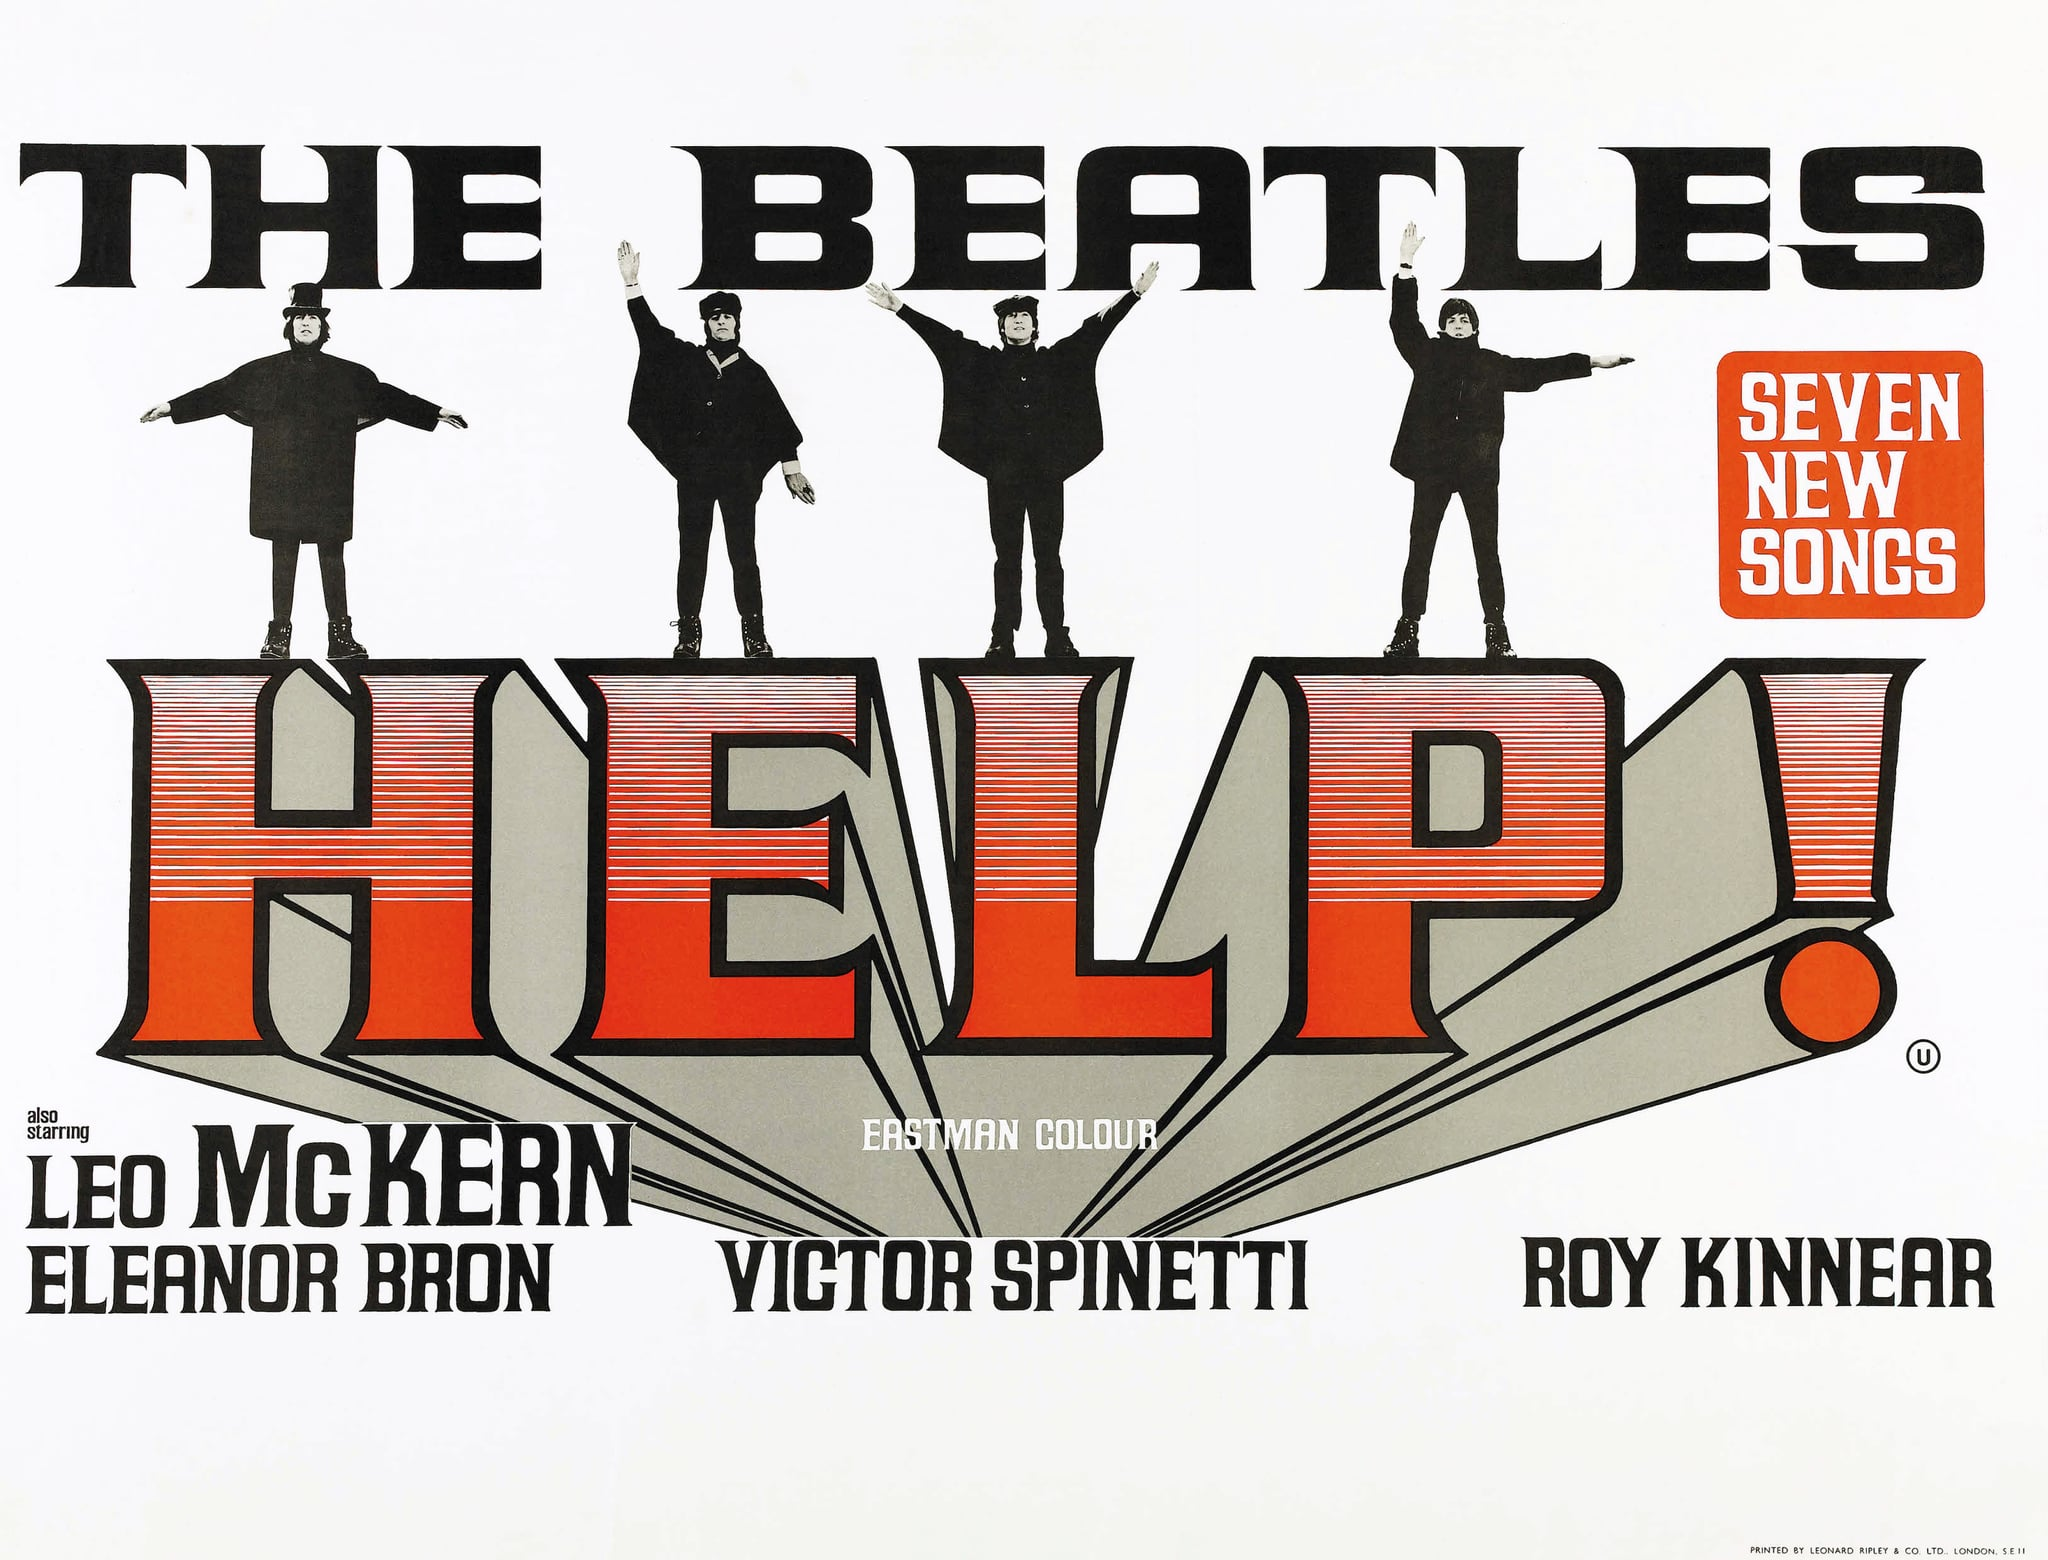 HELP!: The Beatles, US lobbycard, from left: George Harrison, Ringo Starr, John Lennon, Paul McCartney, 1965